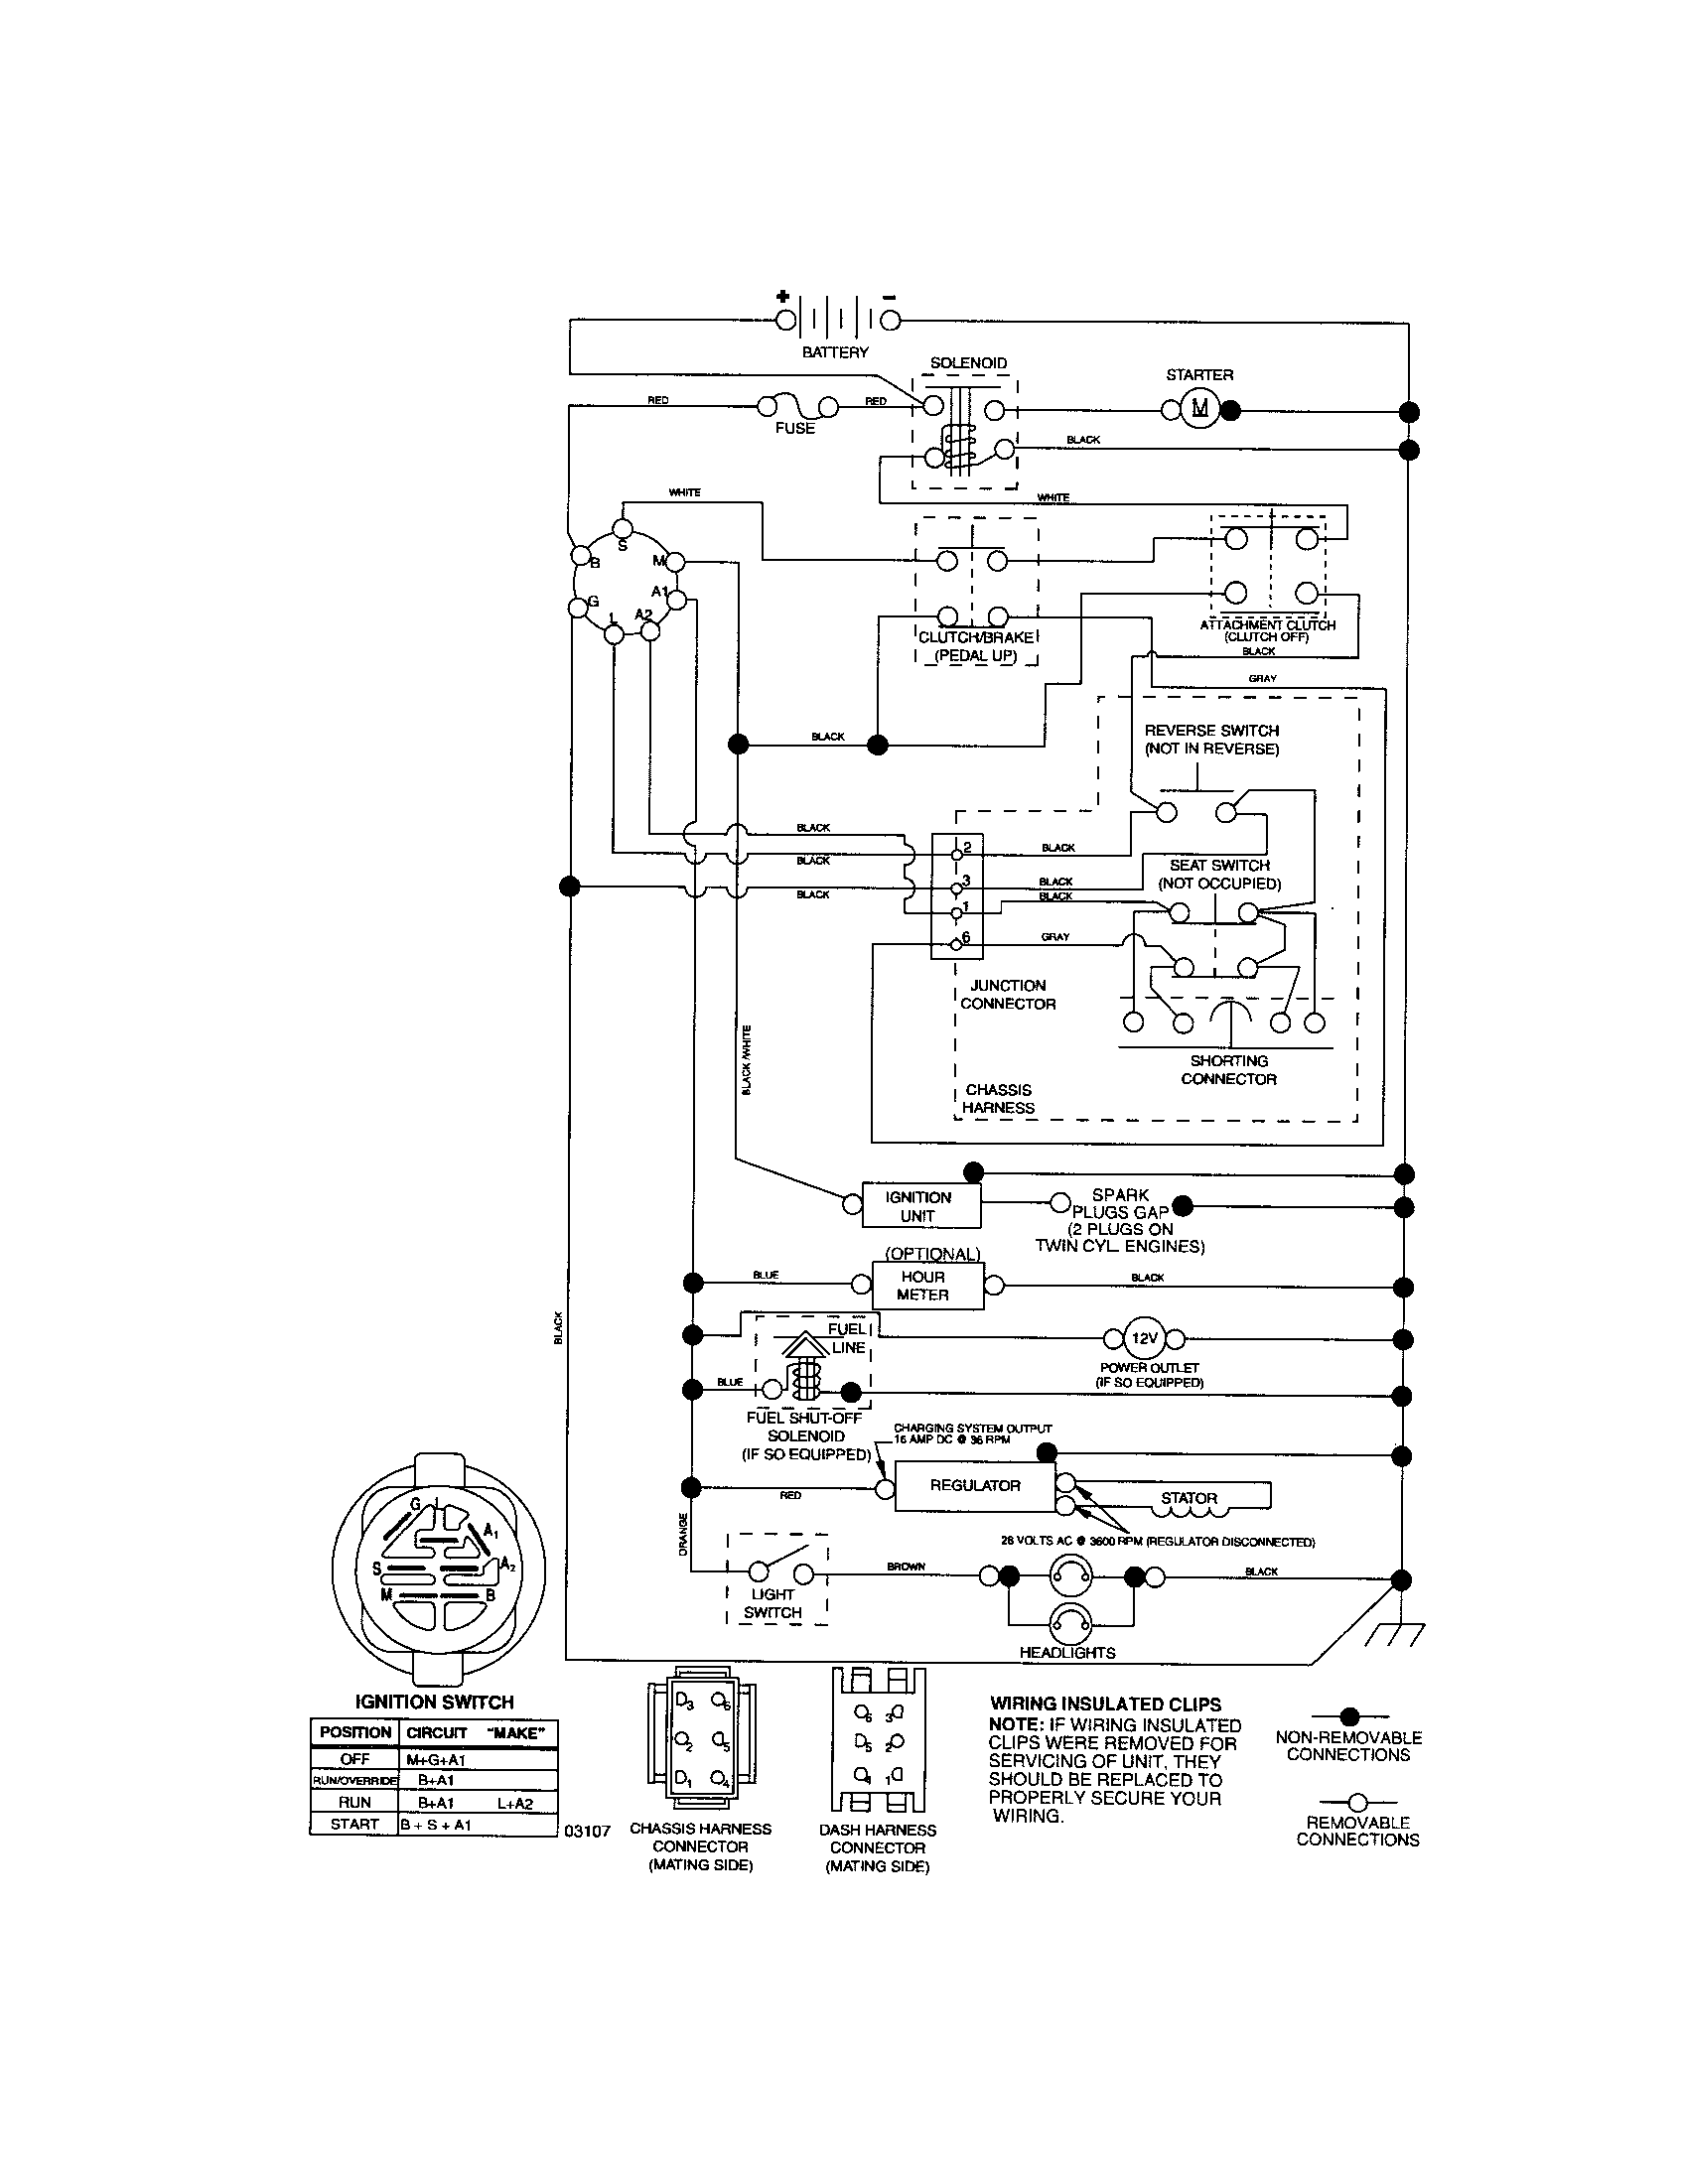 swisher wiring harness diagram wiring diagram sortlawn tractor wiring harness wiring diagram swisher wiring harness diagram [ 1696 x 2200 Pixel ]